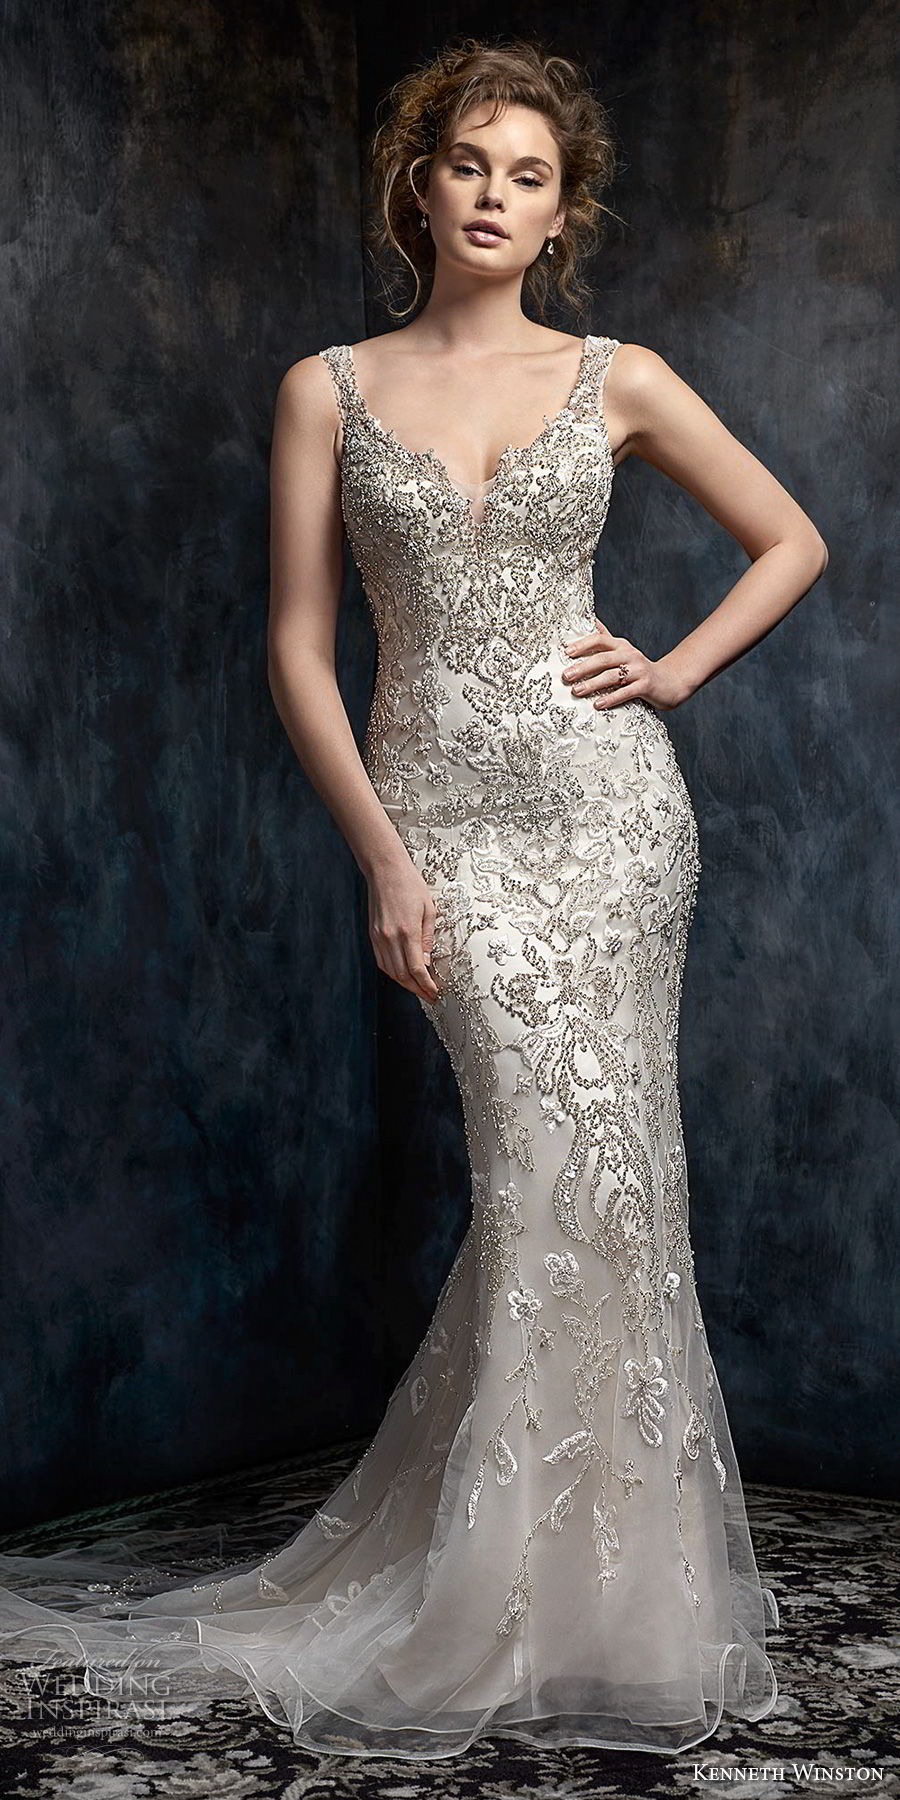 kenneth winston fall 2017 bridal sleeveless with strap sweetheart neckline full beaded embellishment elegant glamorous sheath wedding dress low open back sweep train (46) mv